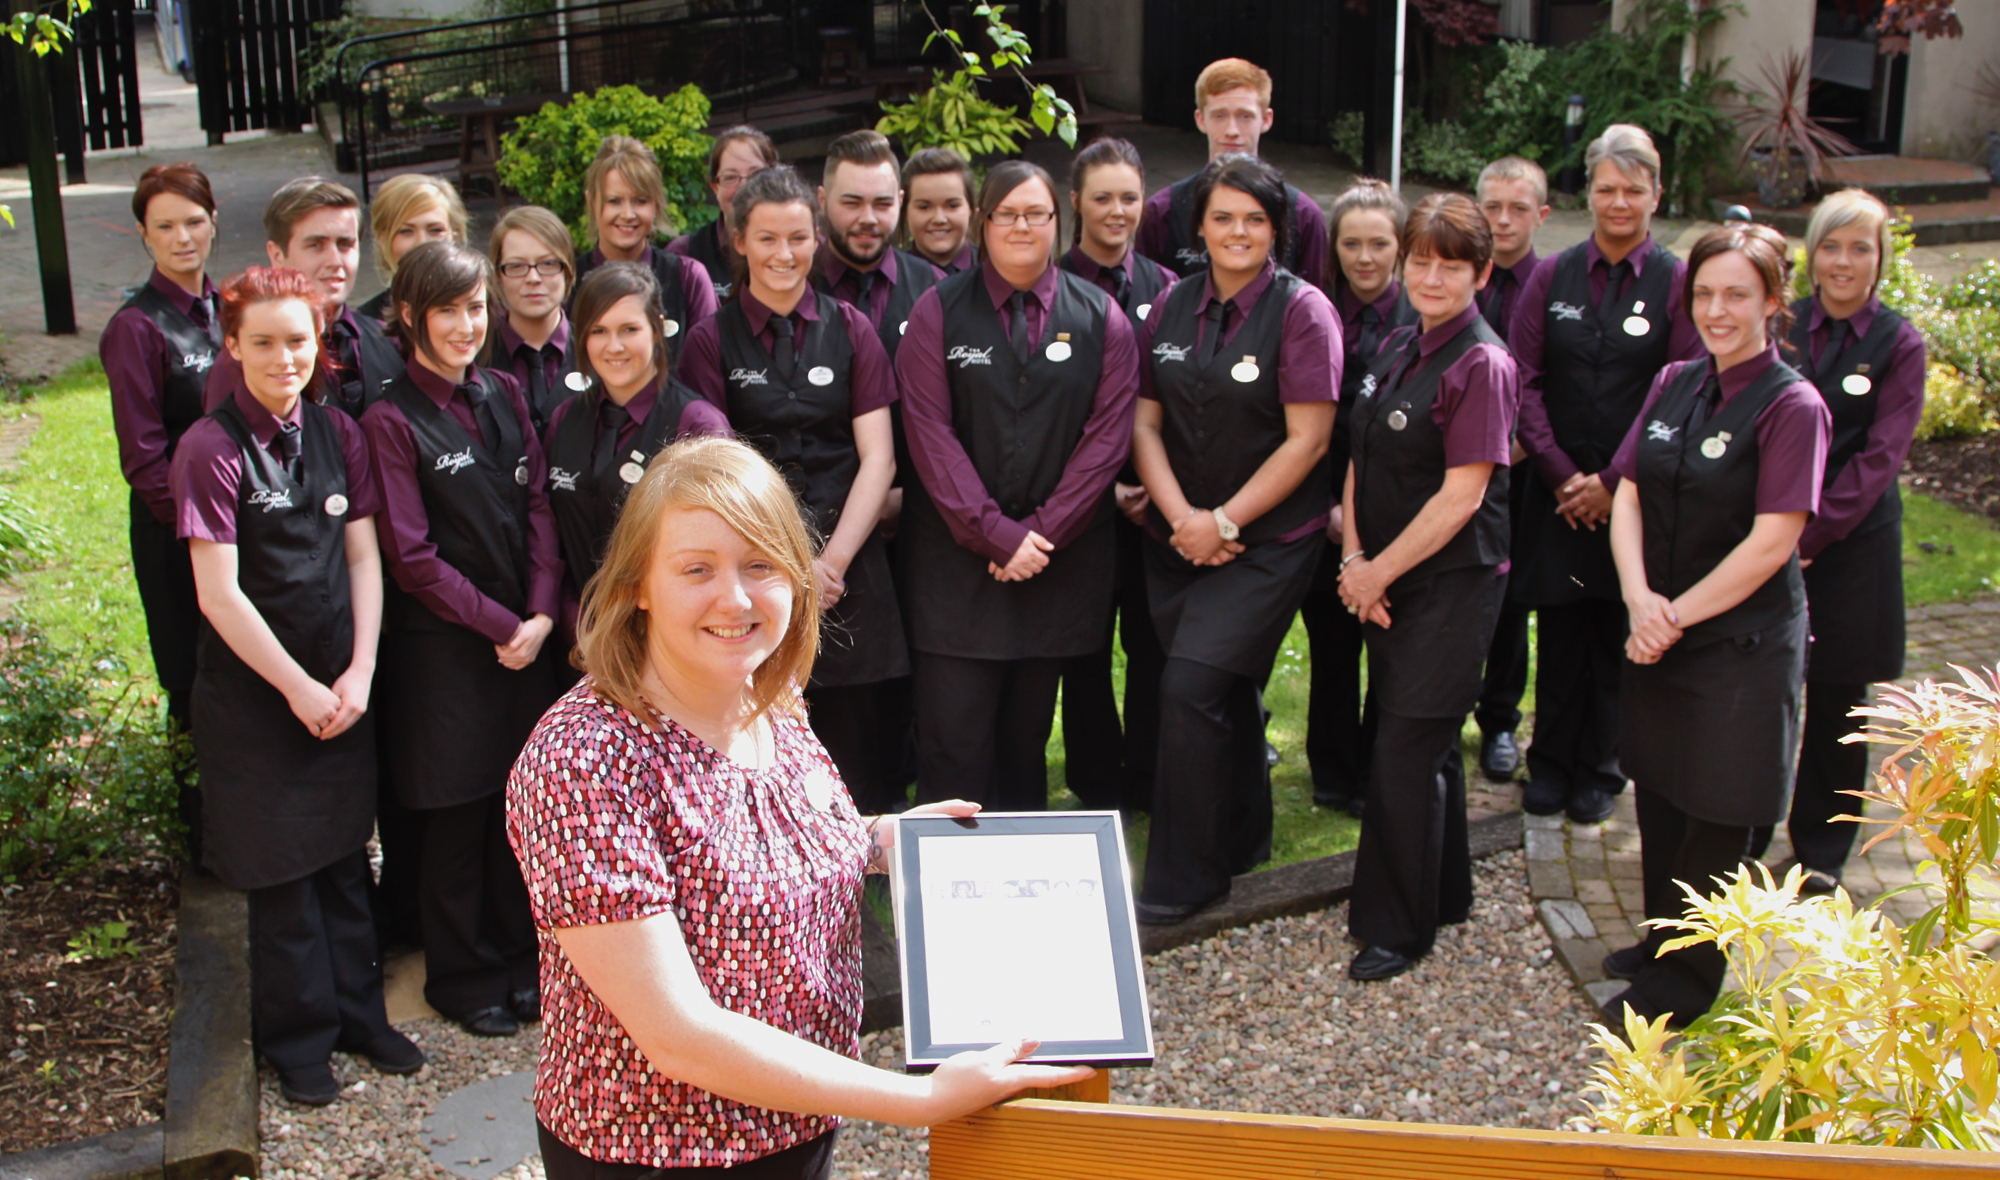 meet the royal hotel team , cookstown